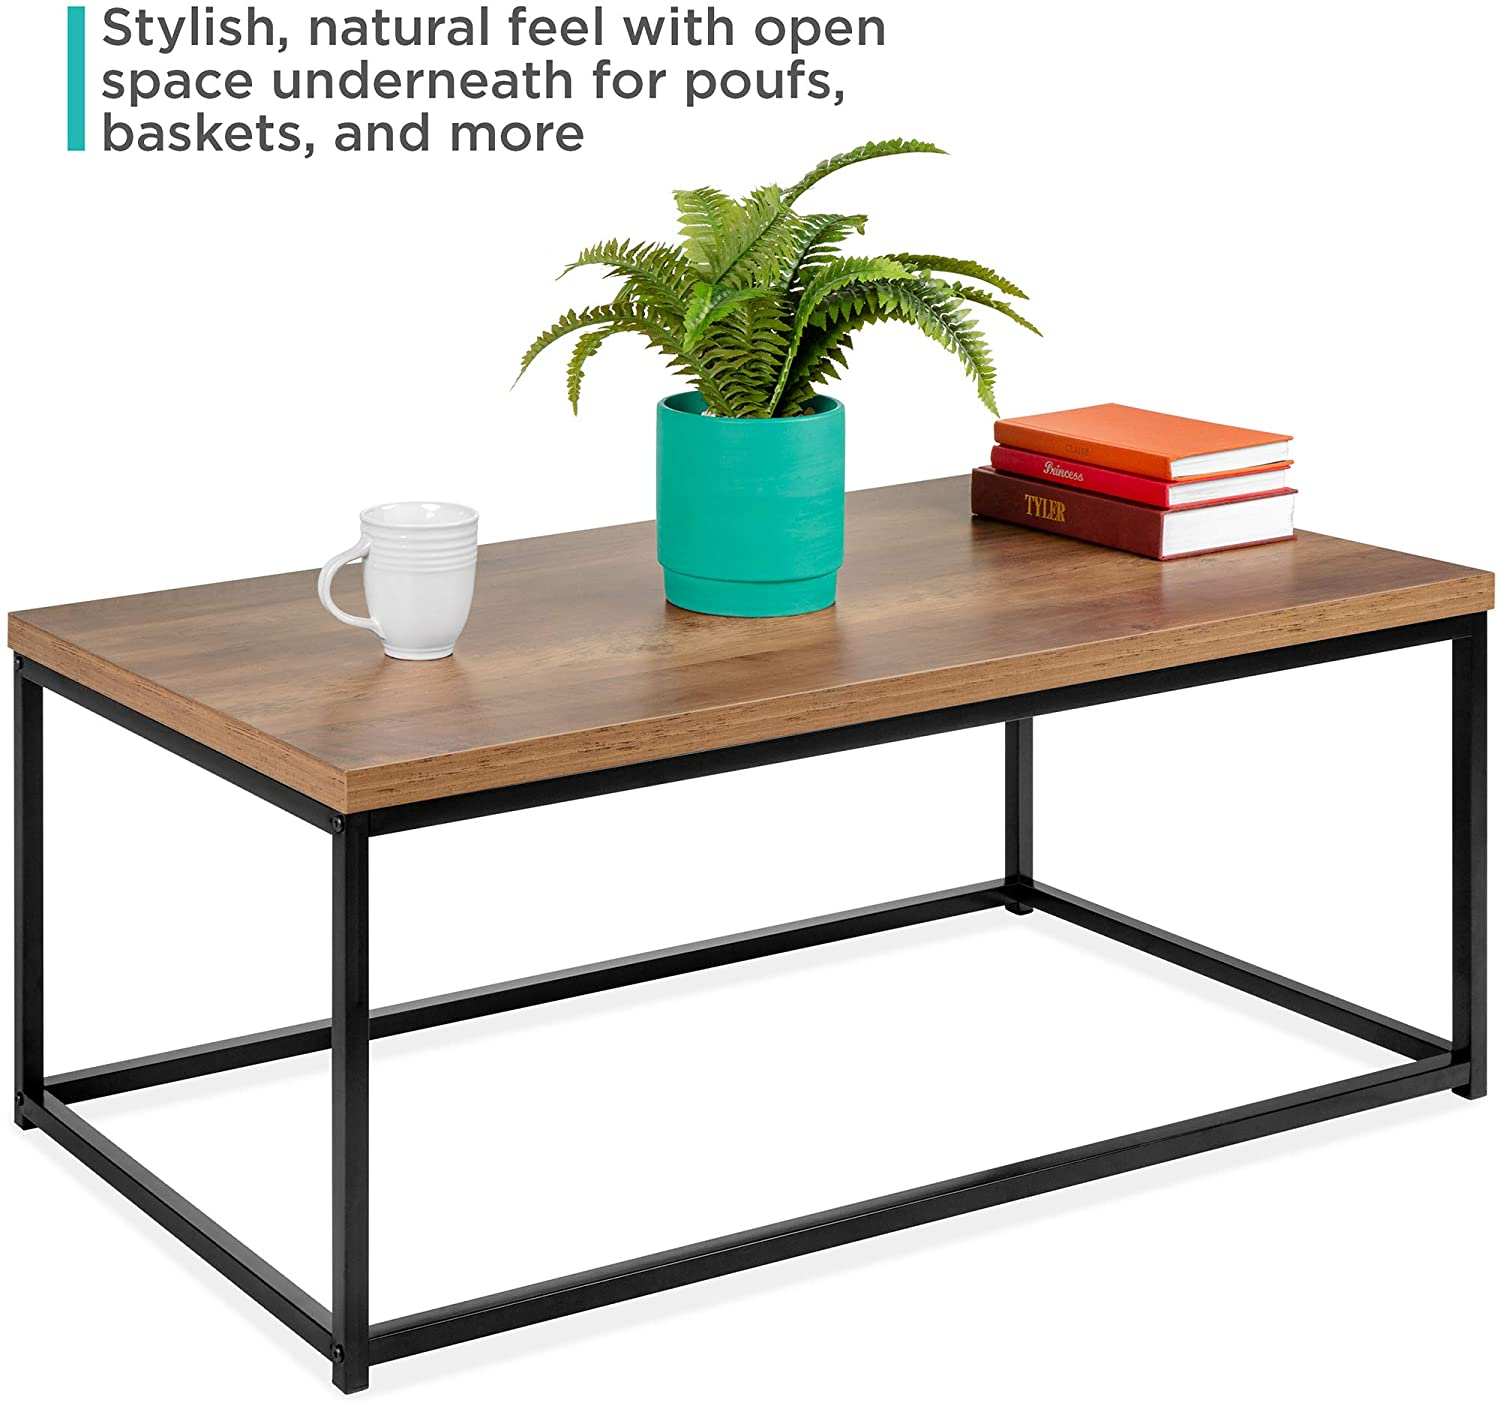 Best Choice Products 44in Modern Industrial Style Rectangular Wood Grain Top Coffee Table w/Metal Frame, 1.25in Top